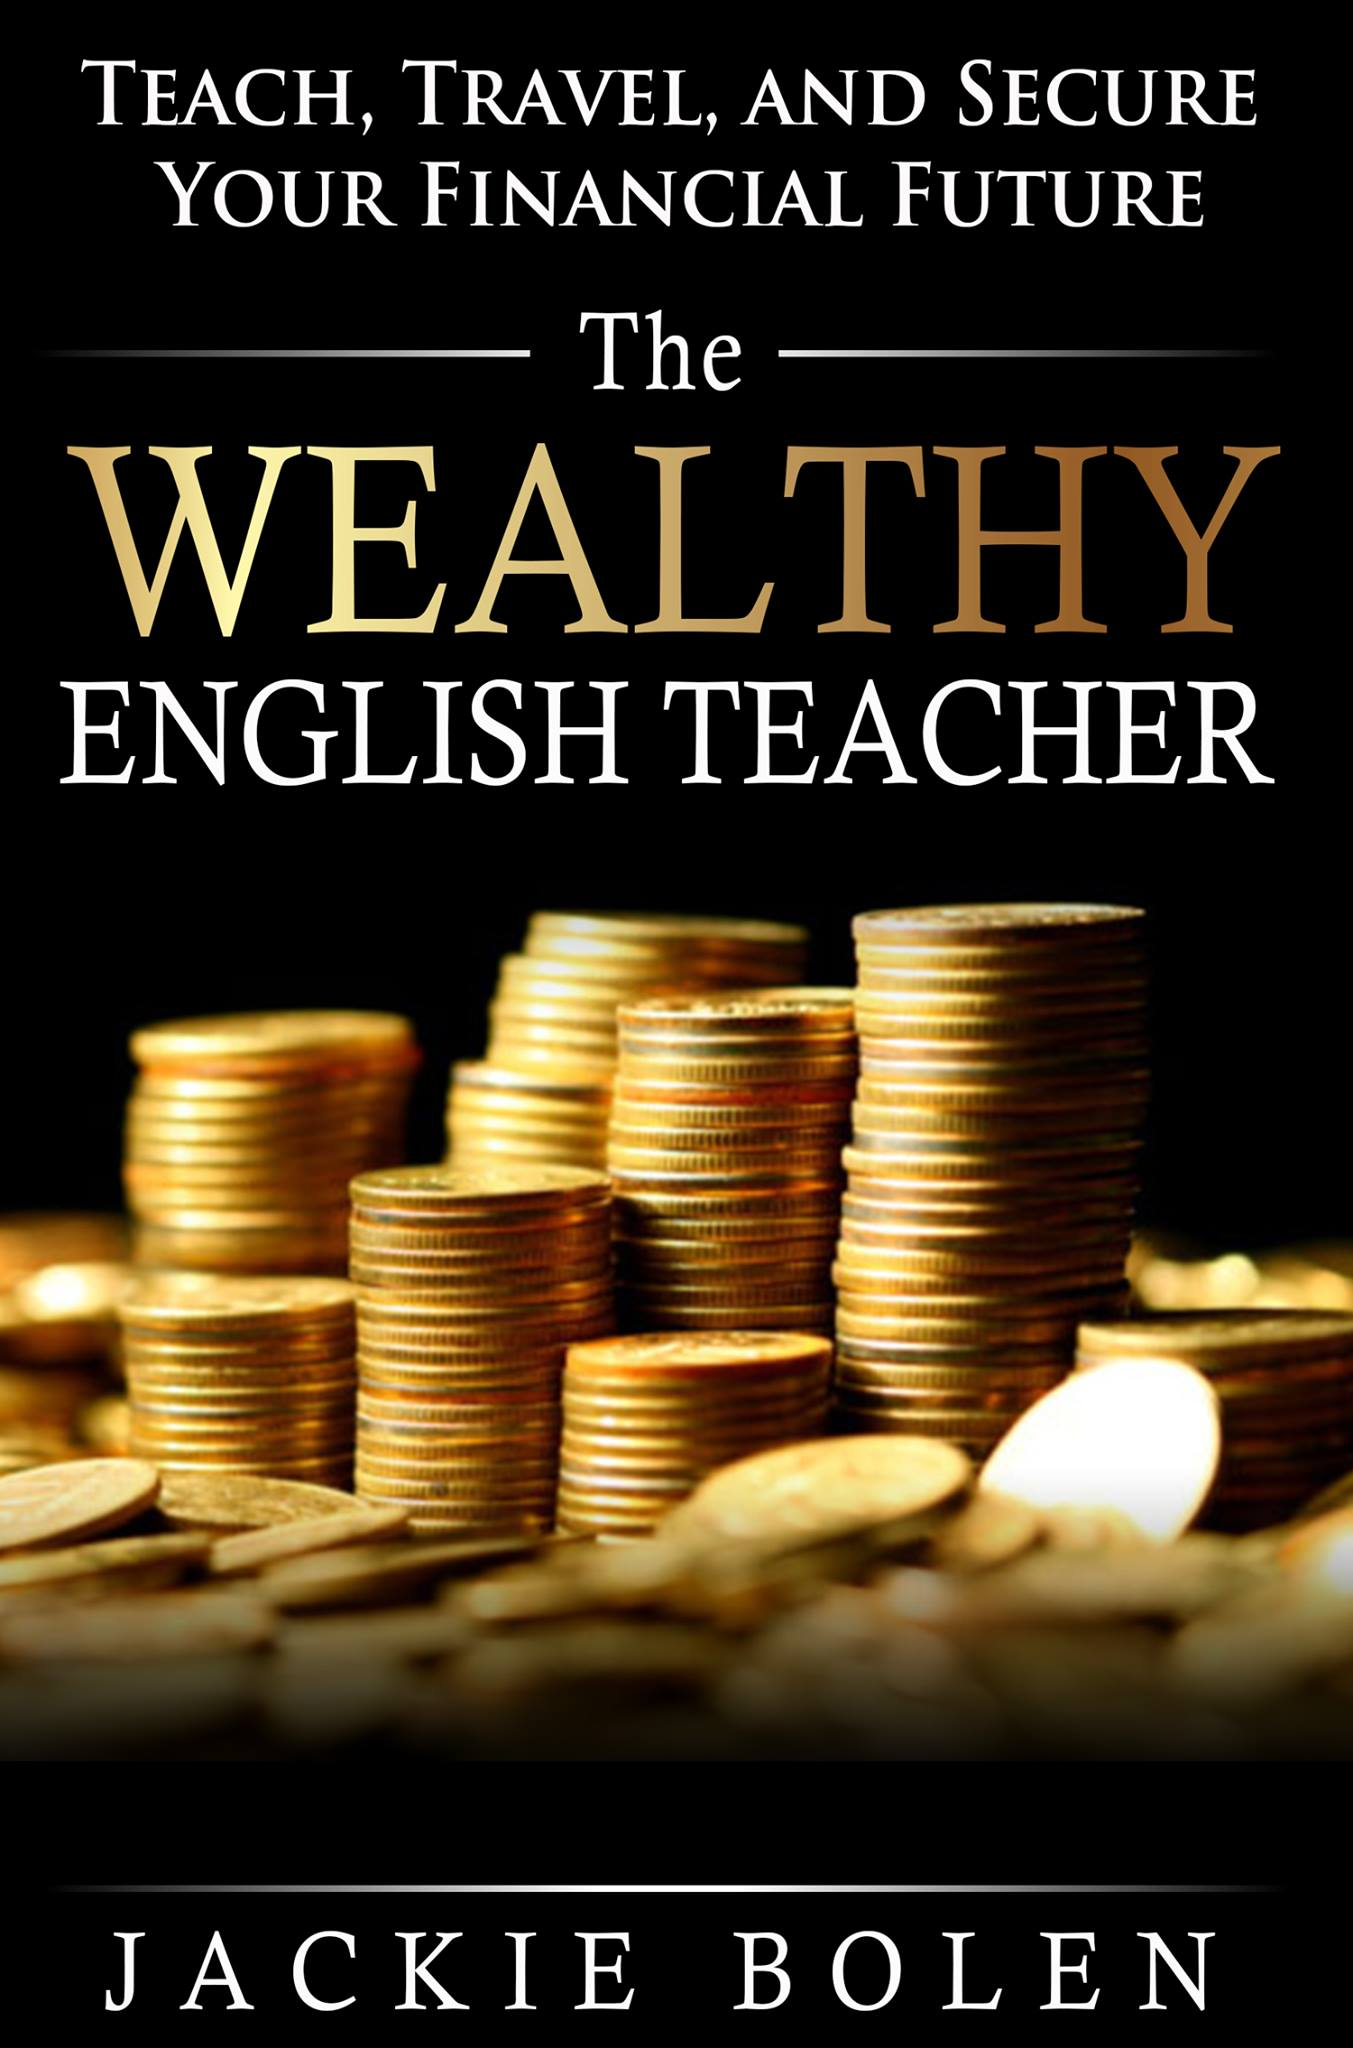 The Wealthy Teacher: An Interview with Jackie Bolen